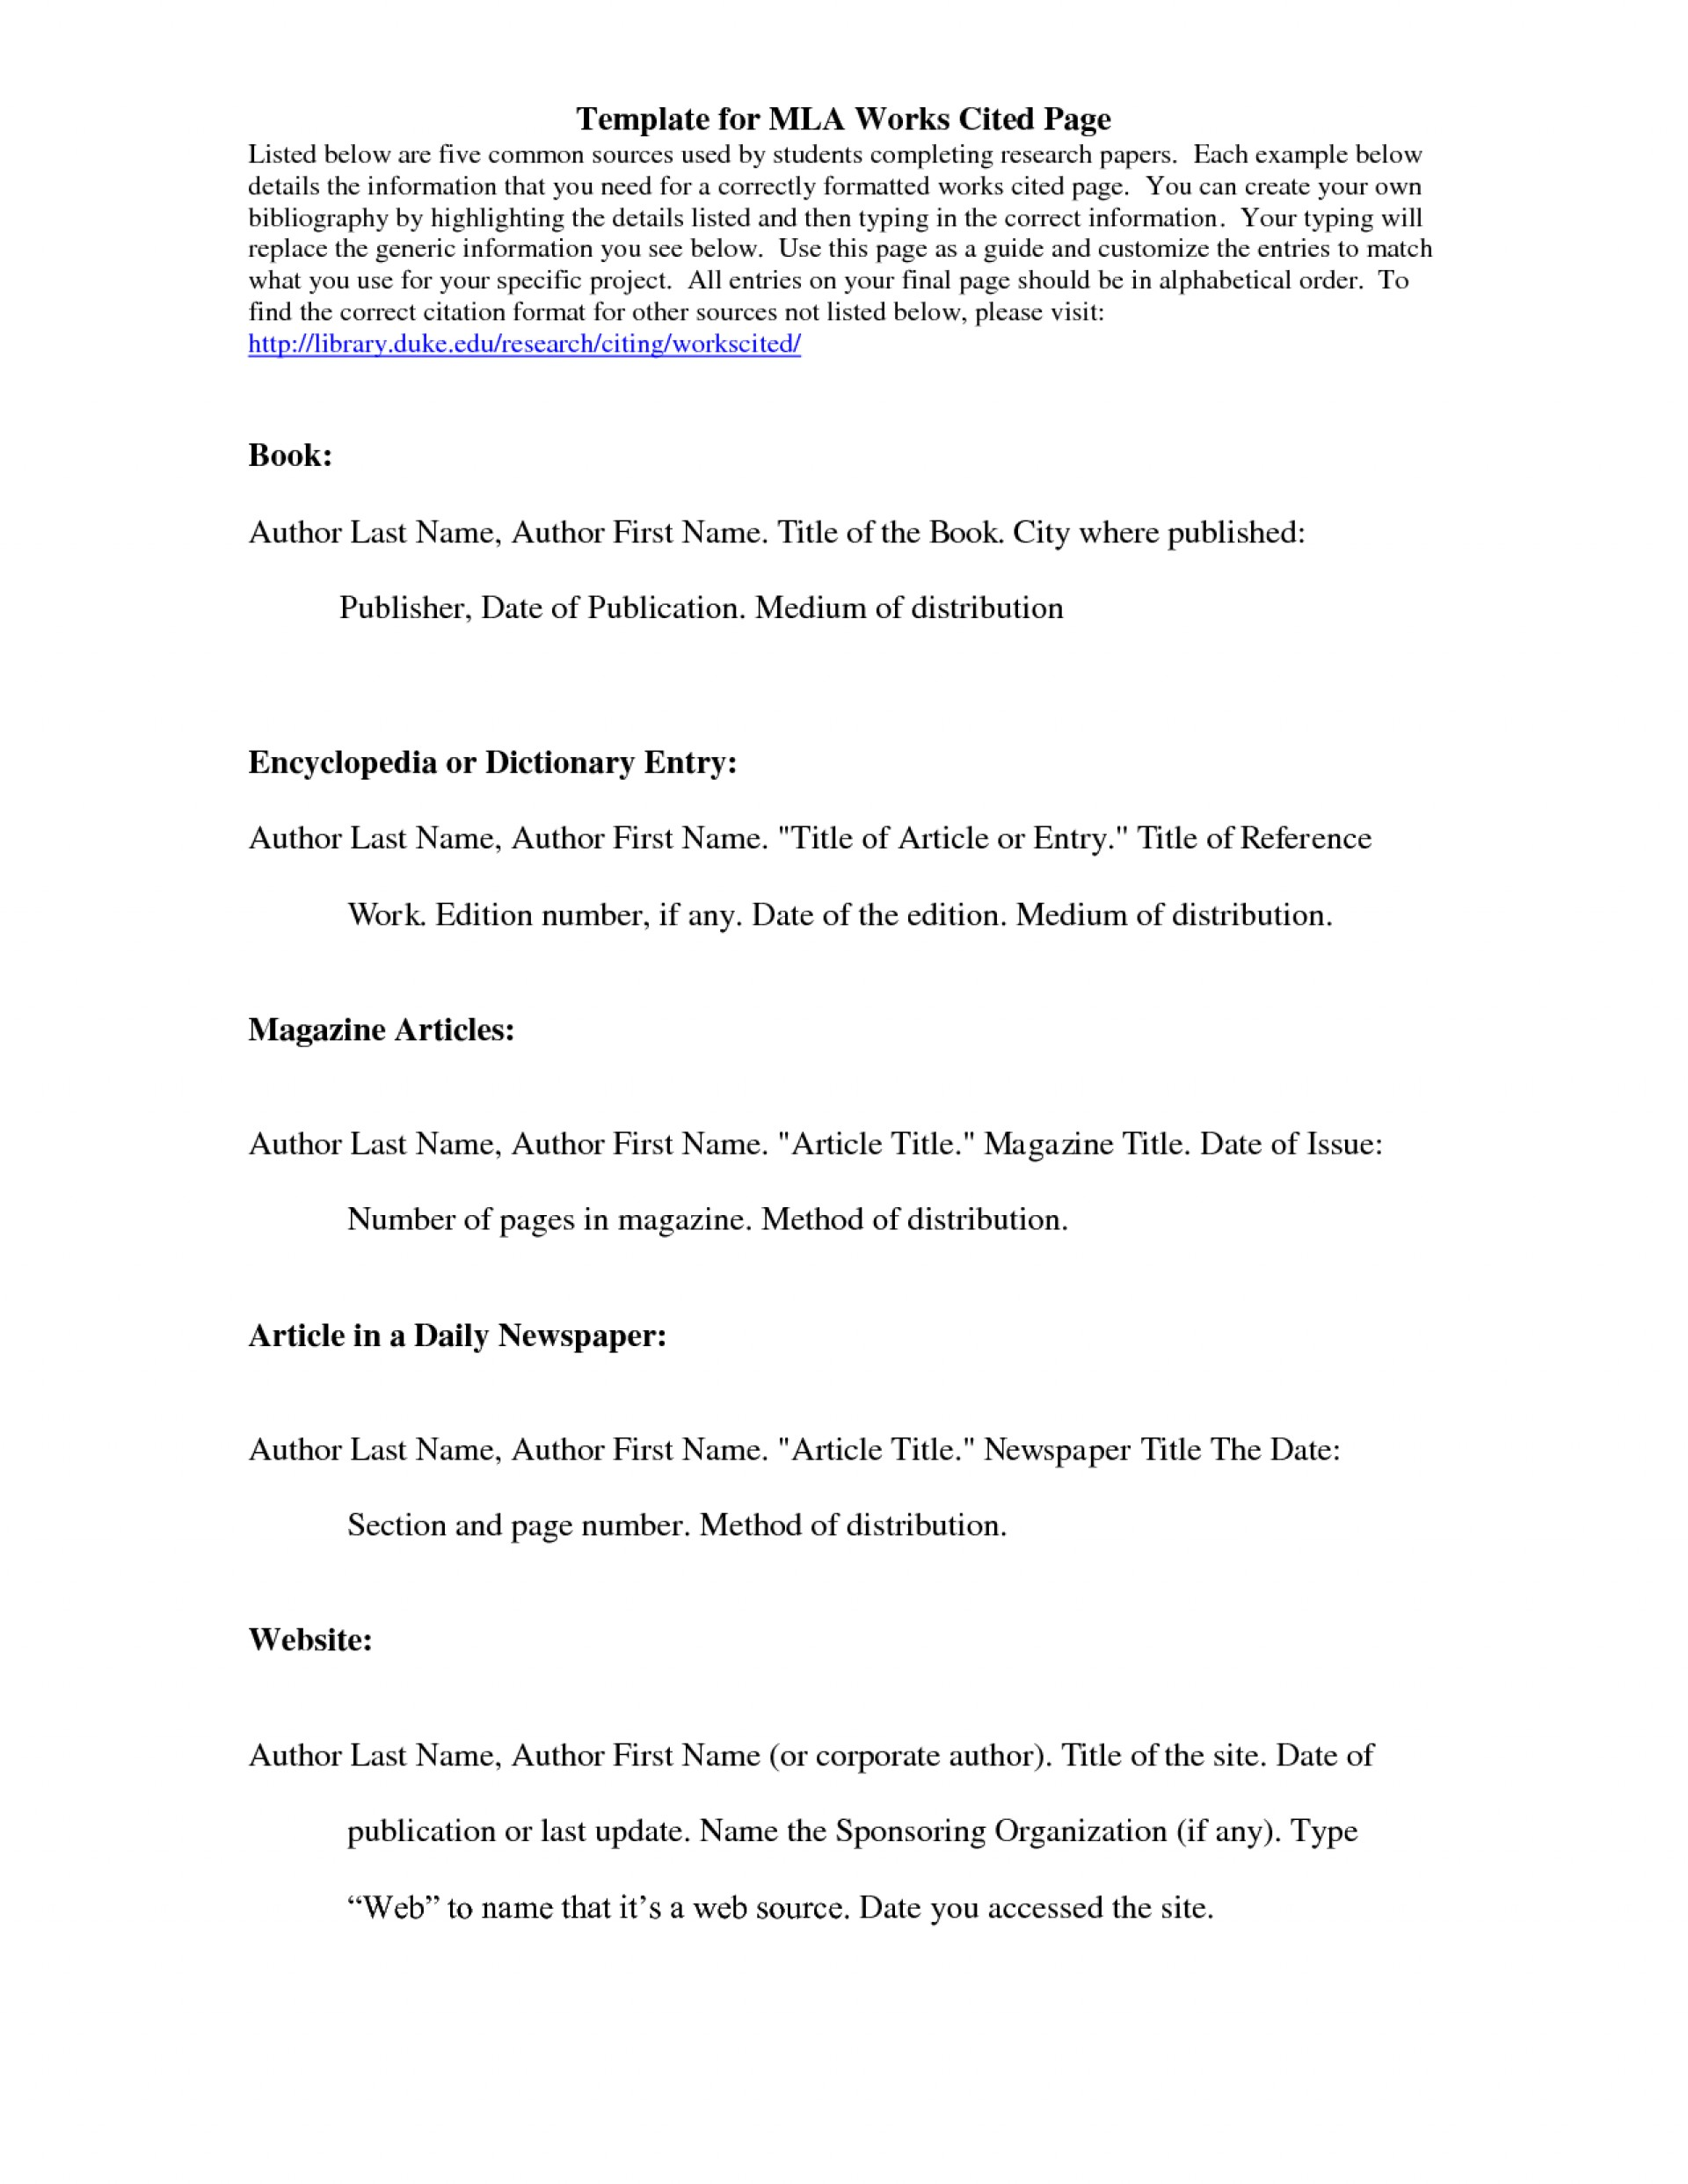 011 Research Paper How To Do Mla Works Cited Unusual For A Page 1920